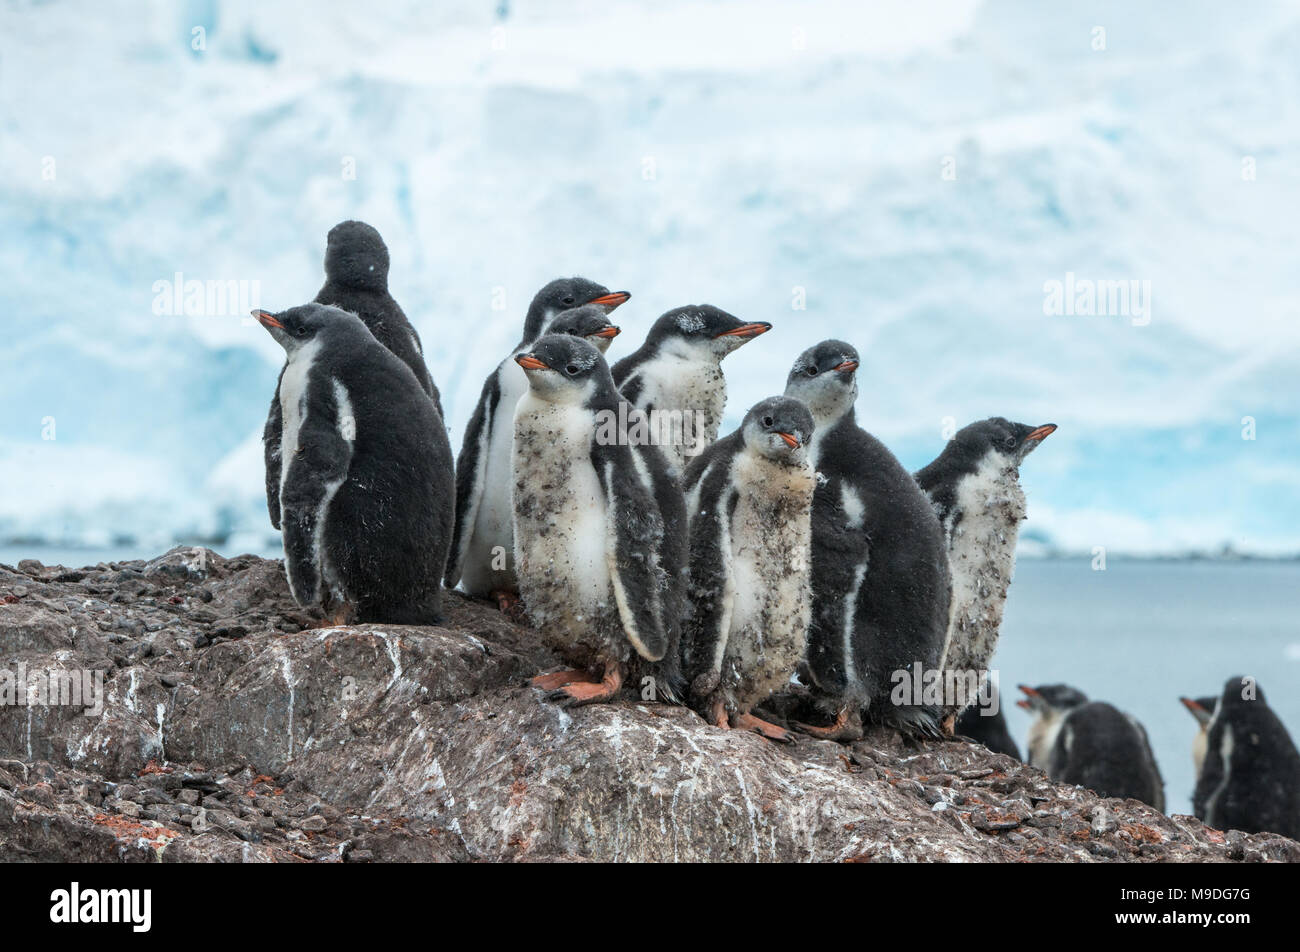 Safety in numbers. A Gentoo Penguin creche huddles together for safety on a rocky hillock in Antarctica - Stock Image